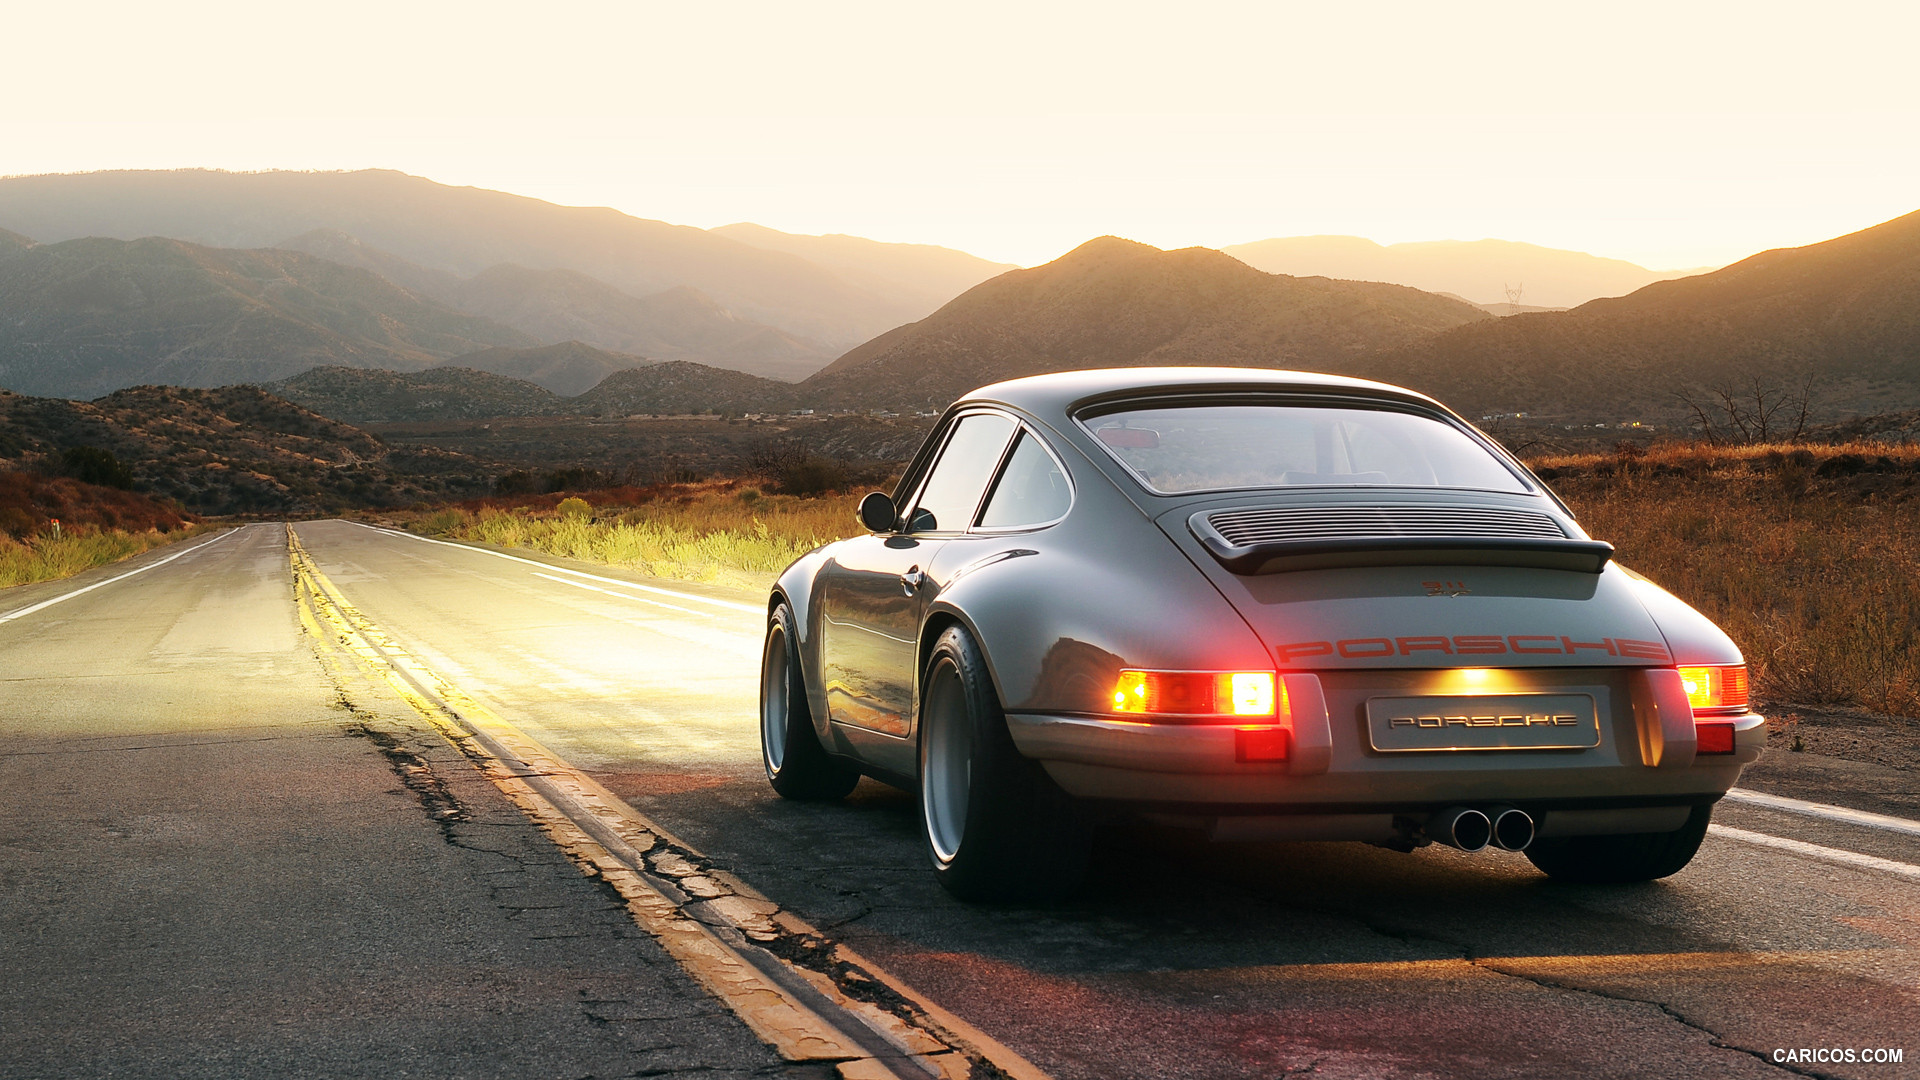 Singer 911 Wallpaper Singer Porsche 911 Rear Wallpaper Singer Porsche Wallpaper Hd 1920x1080 Download Hd Wallpaper Wallpapertip